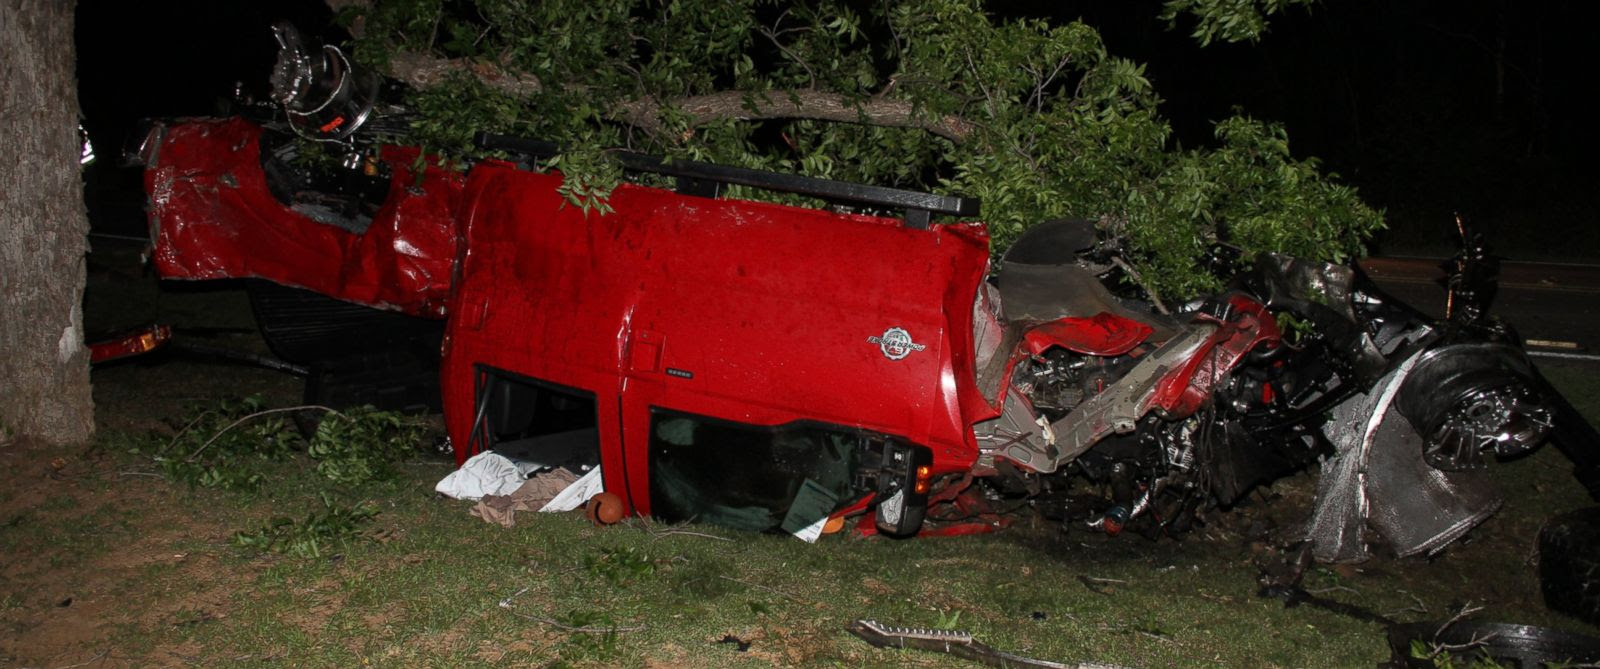 PHOTO: Ethan Couch and seven other teens piled into this pick-up truck before a fatal crash that left four people dead.